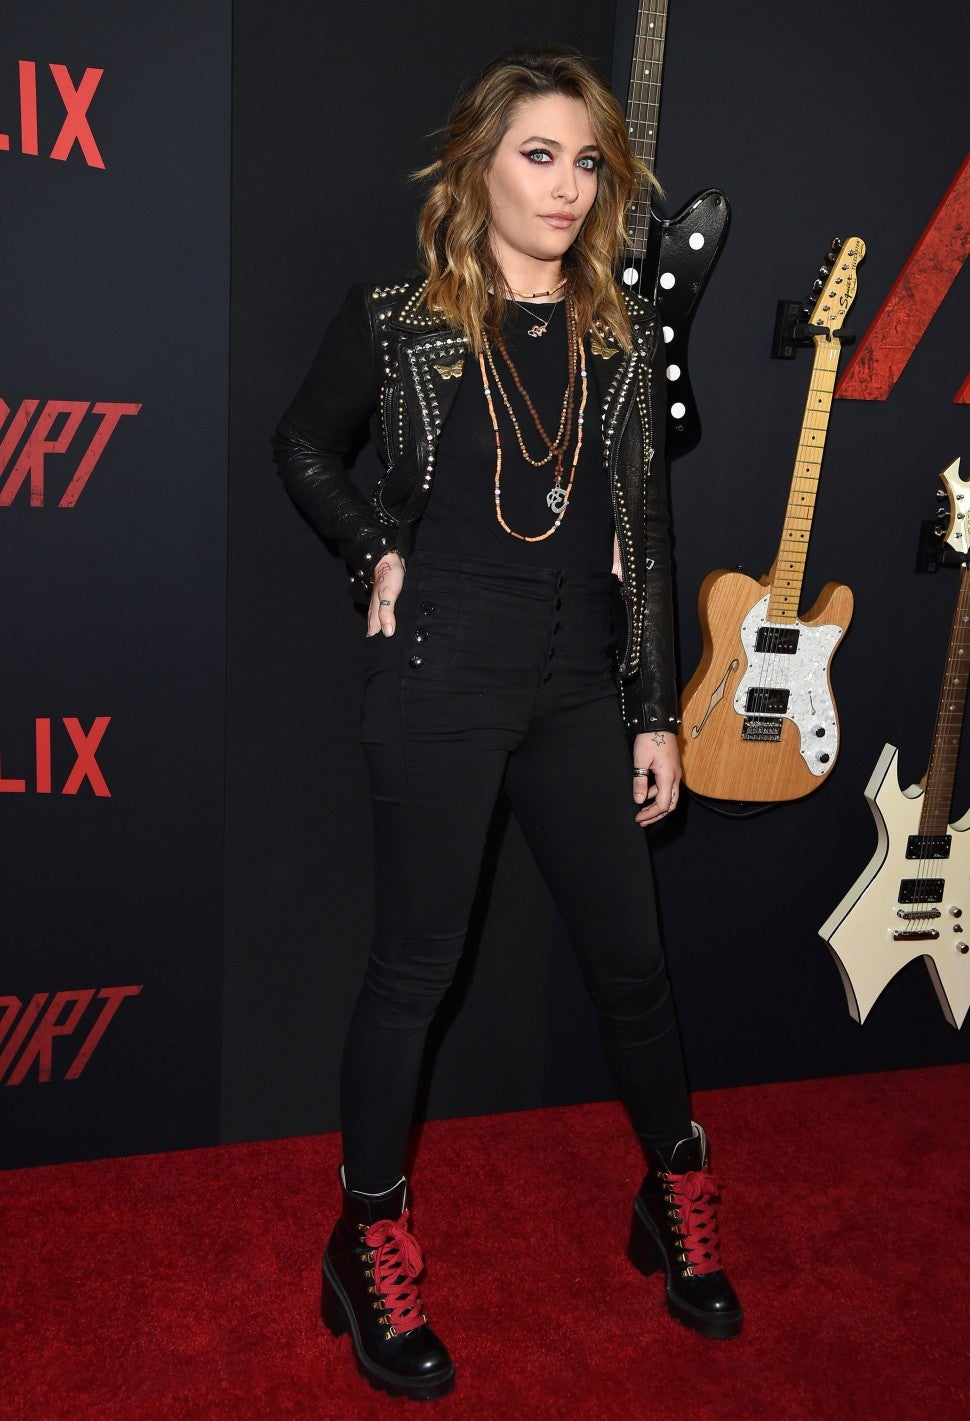 Paris Jackson arrives at the premiere of Netflix's 'The Dirt' at ArcLight Hollywood on March 18, 2019 in Hollywood, California.